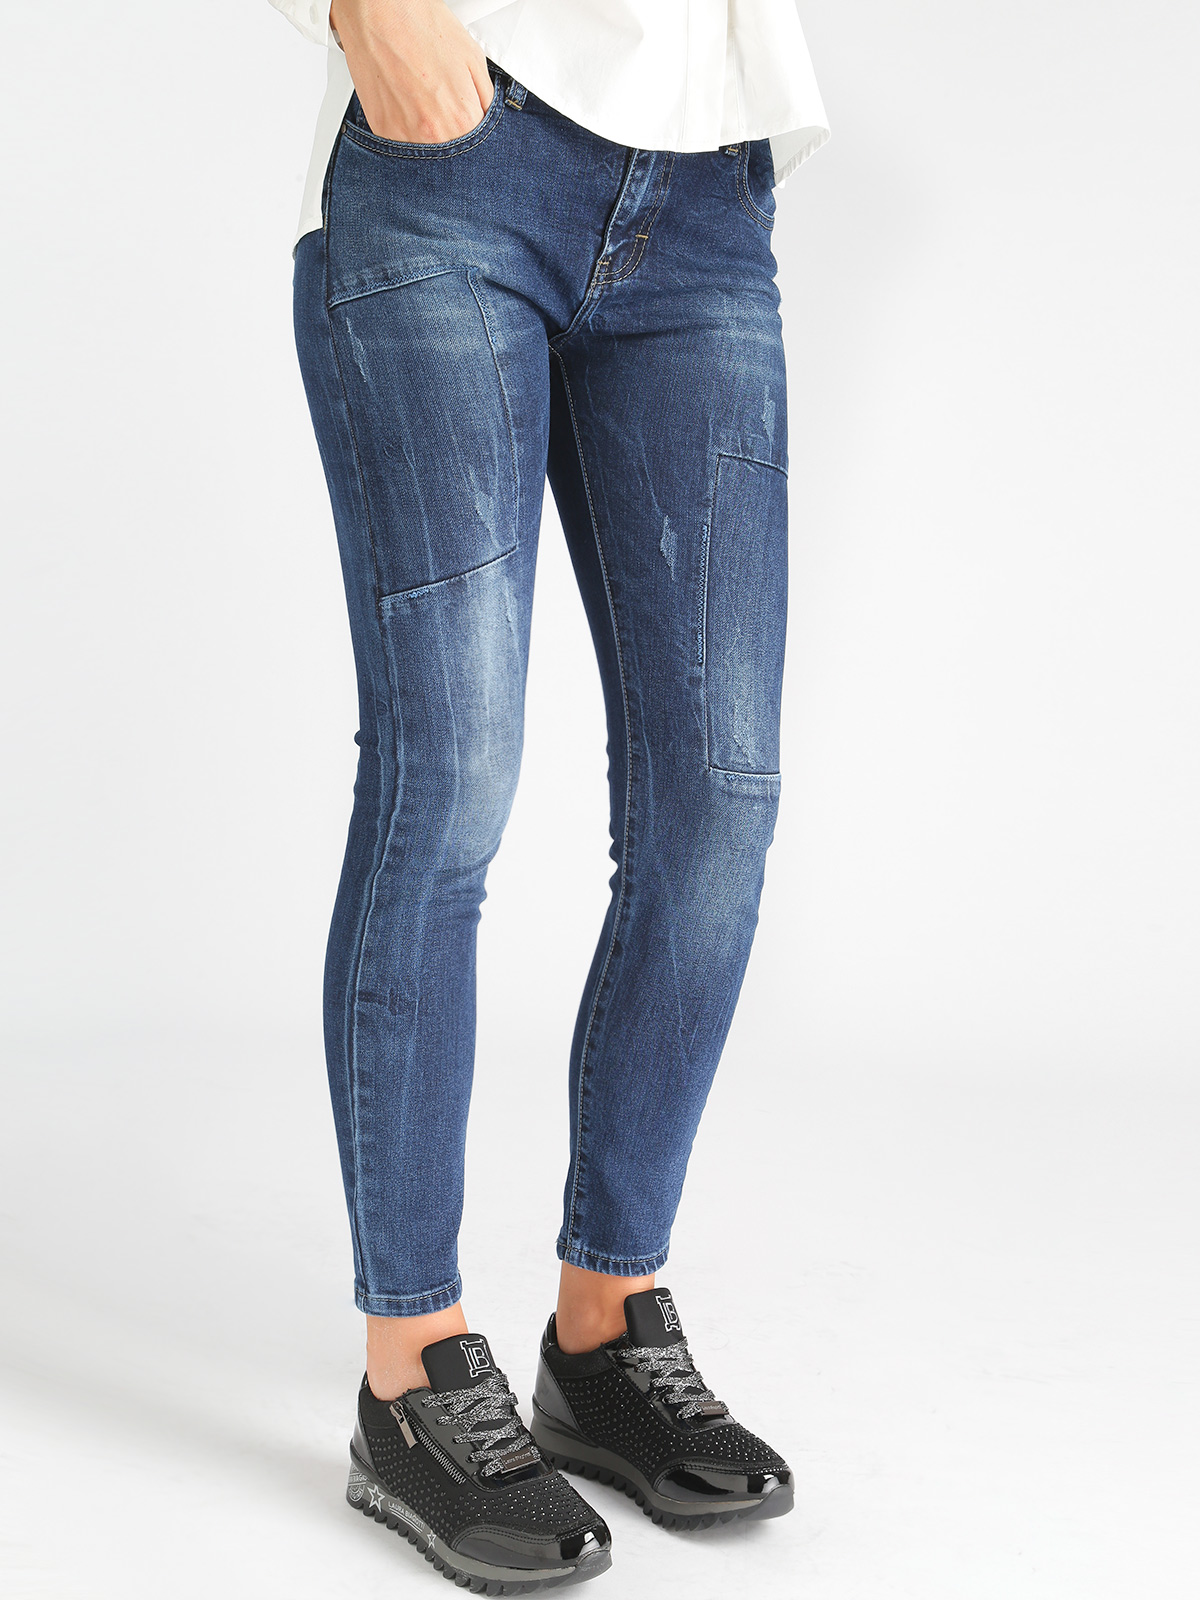 Jeans Effect Washed-denim Blue